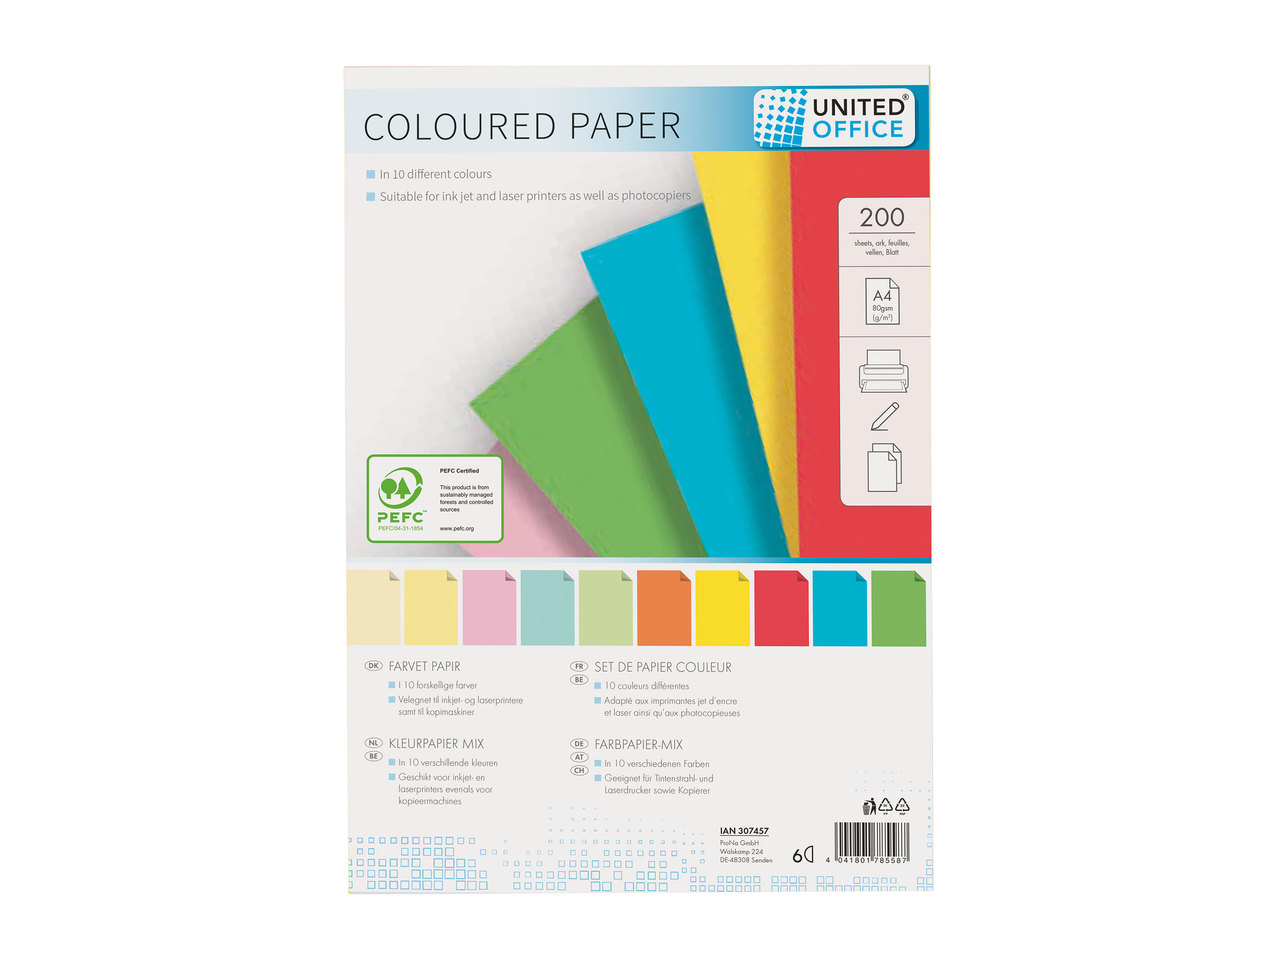 United Office Coloured Paper1